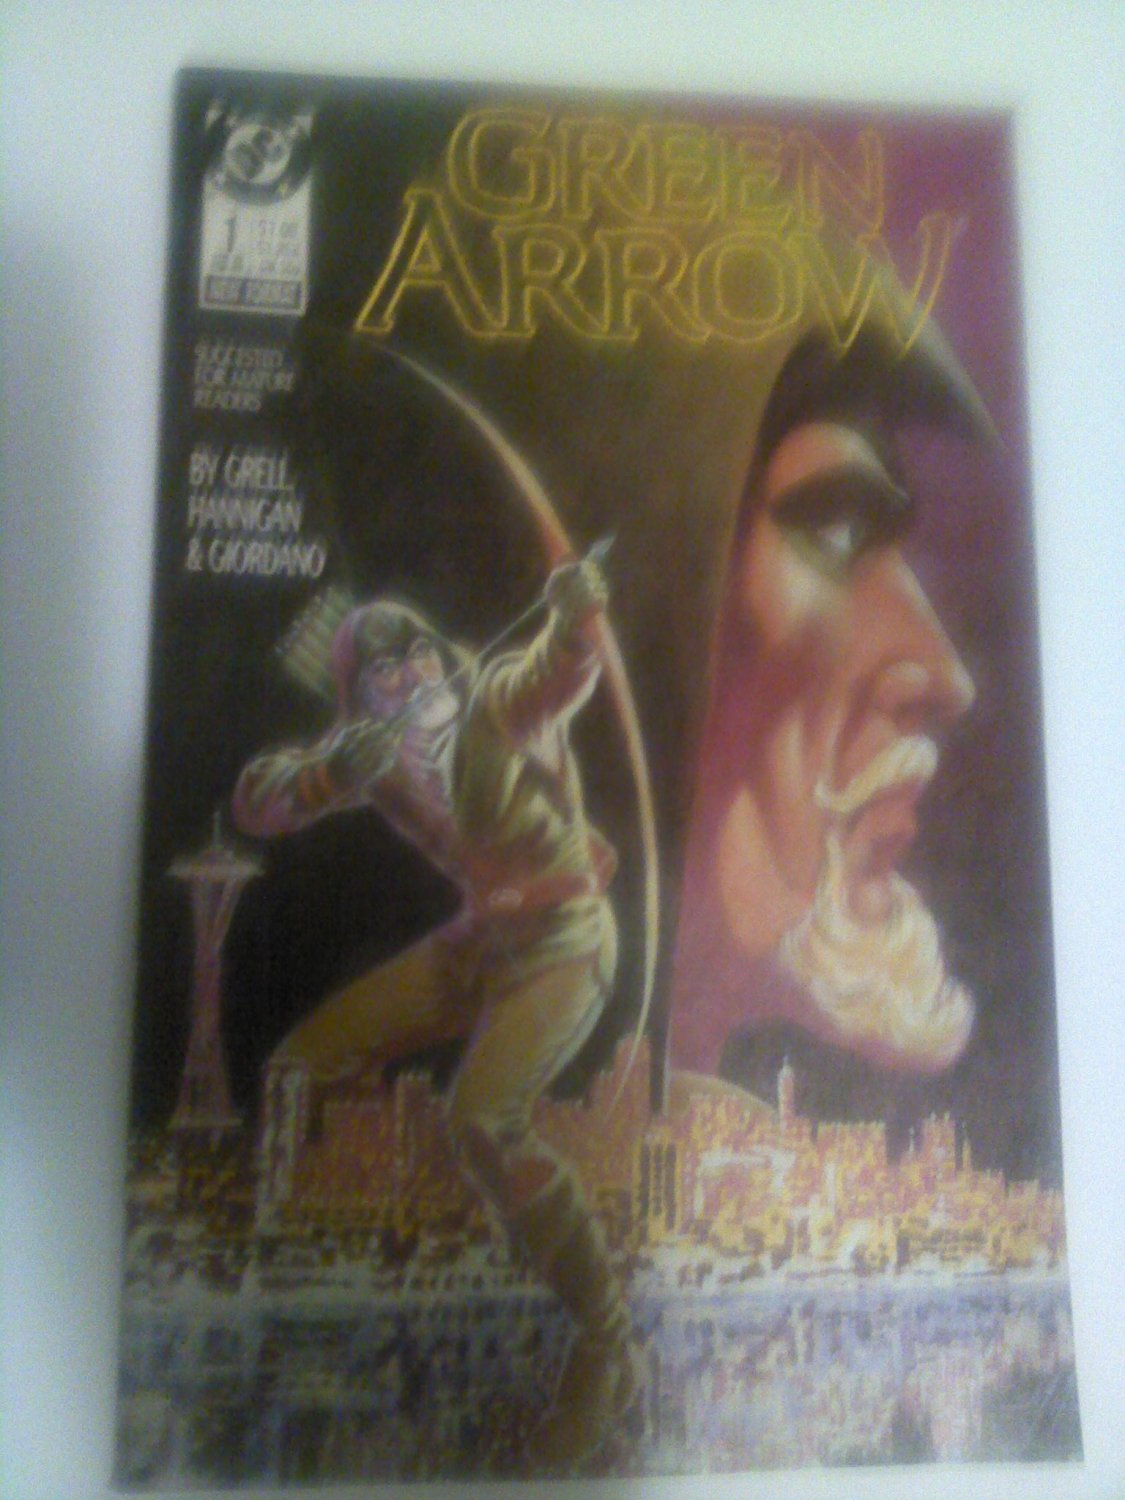 Green Arrow Vol.2 #1 Mike Grell Hunters Moon pt.1,,#9,#14,#128,Batman + Arsenal